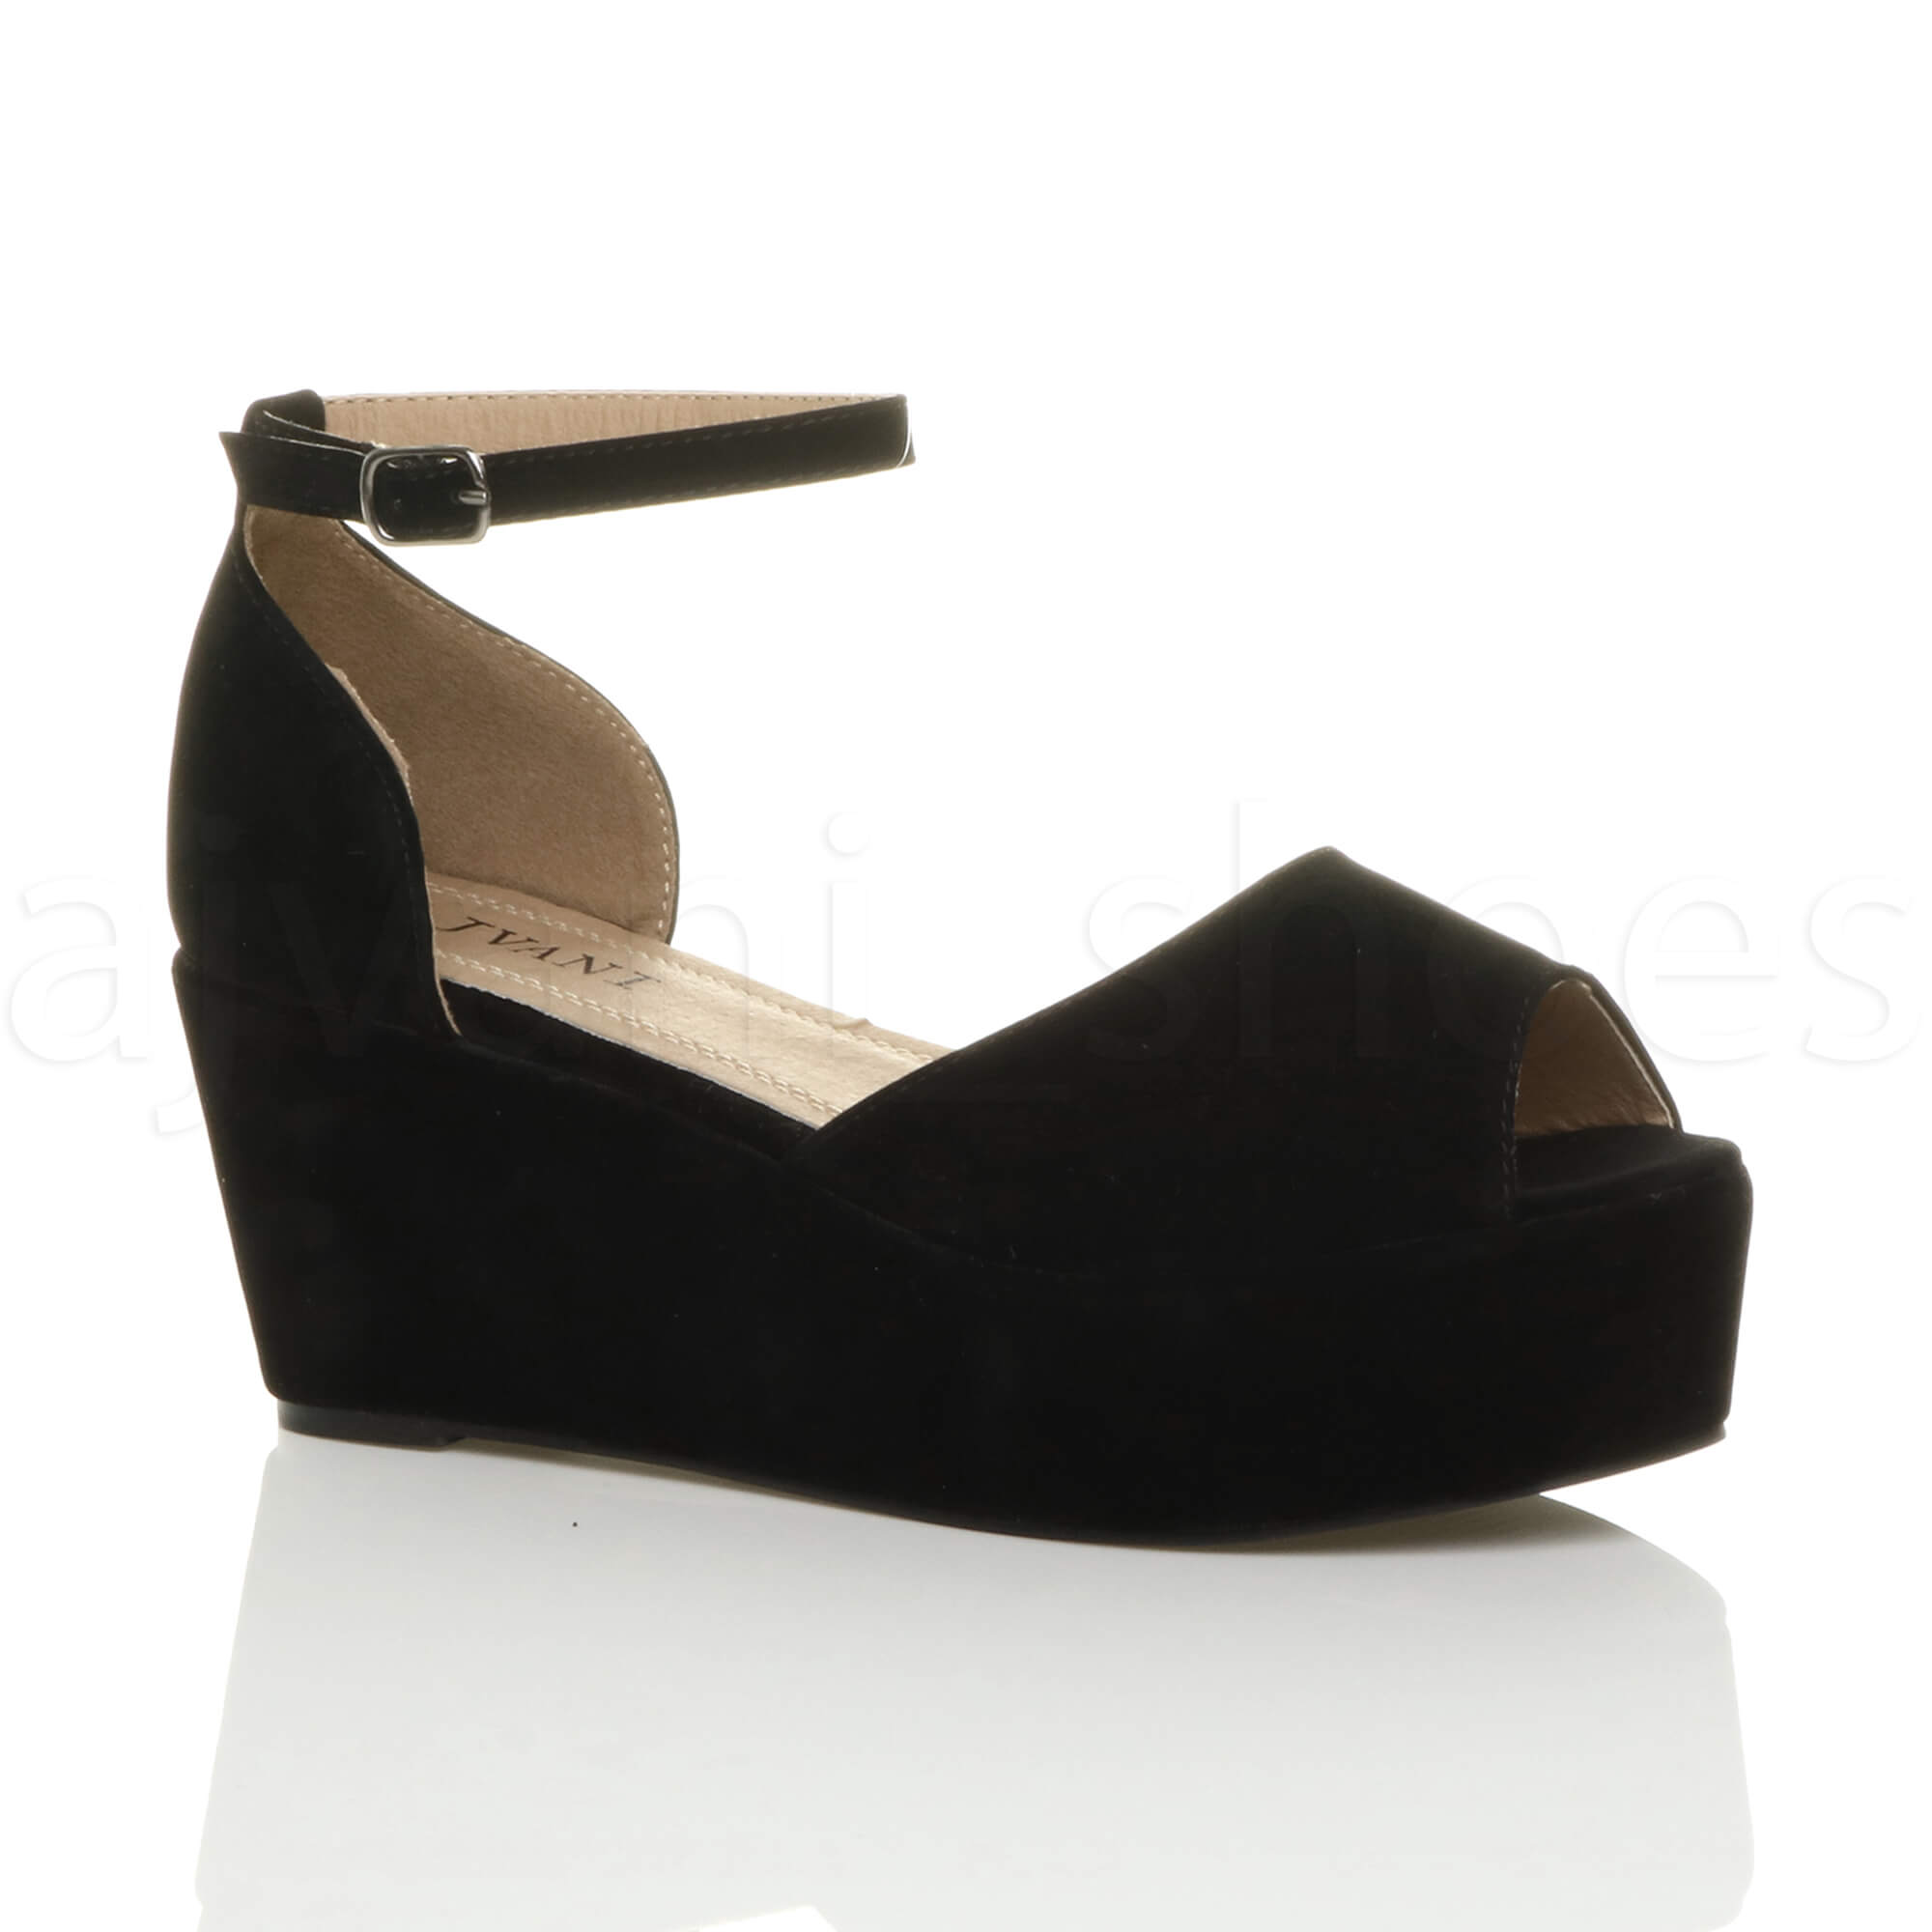 Shop sexy wedges and cheap wedge booties for Women at Pink Basis. Get cute cheap wedge shoes in colors like white, black, and our favorite pink. Shop wedges for women at cheap prices and check out our new arrival wedges.